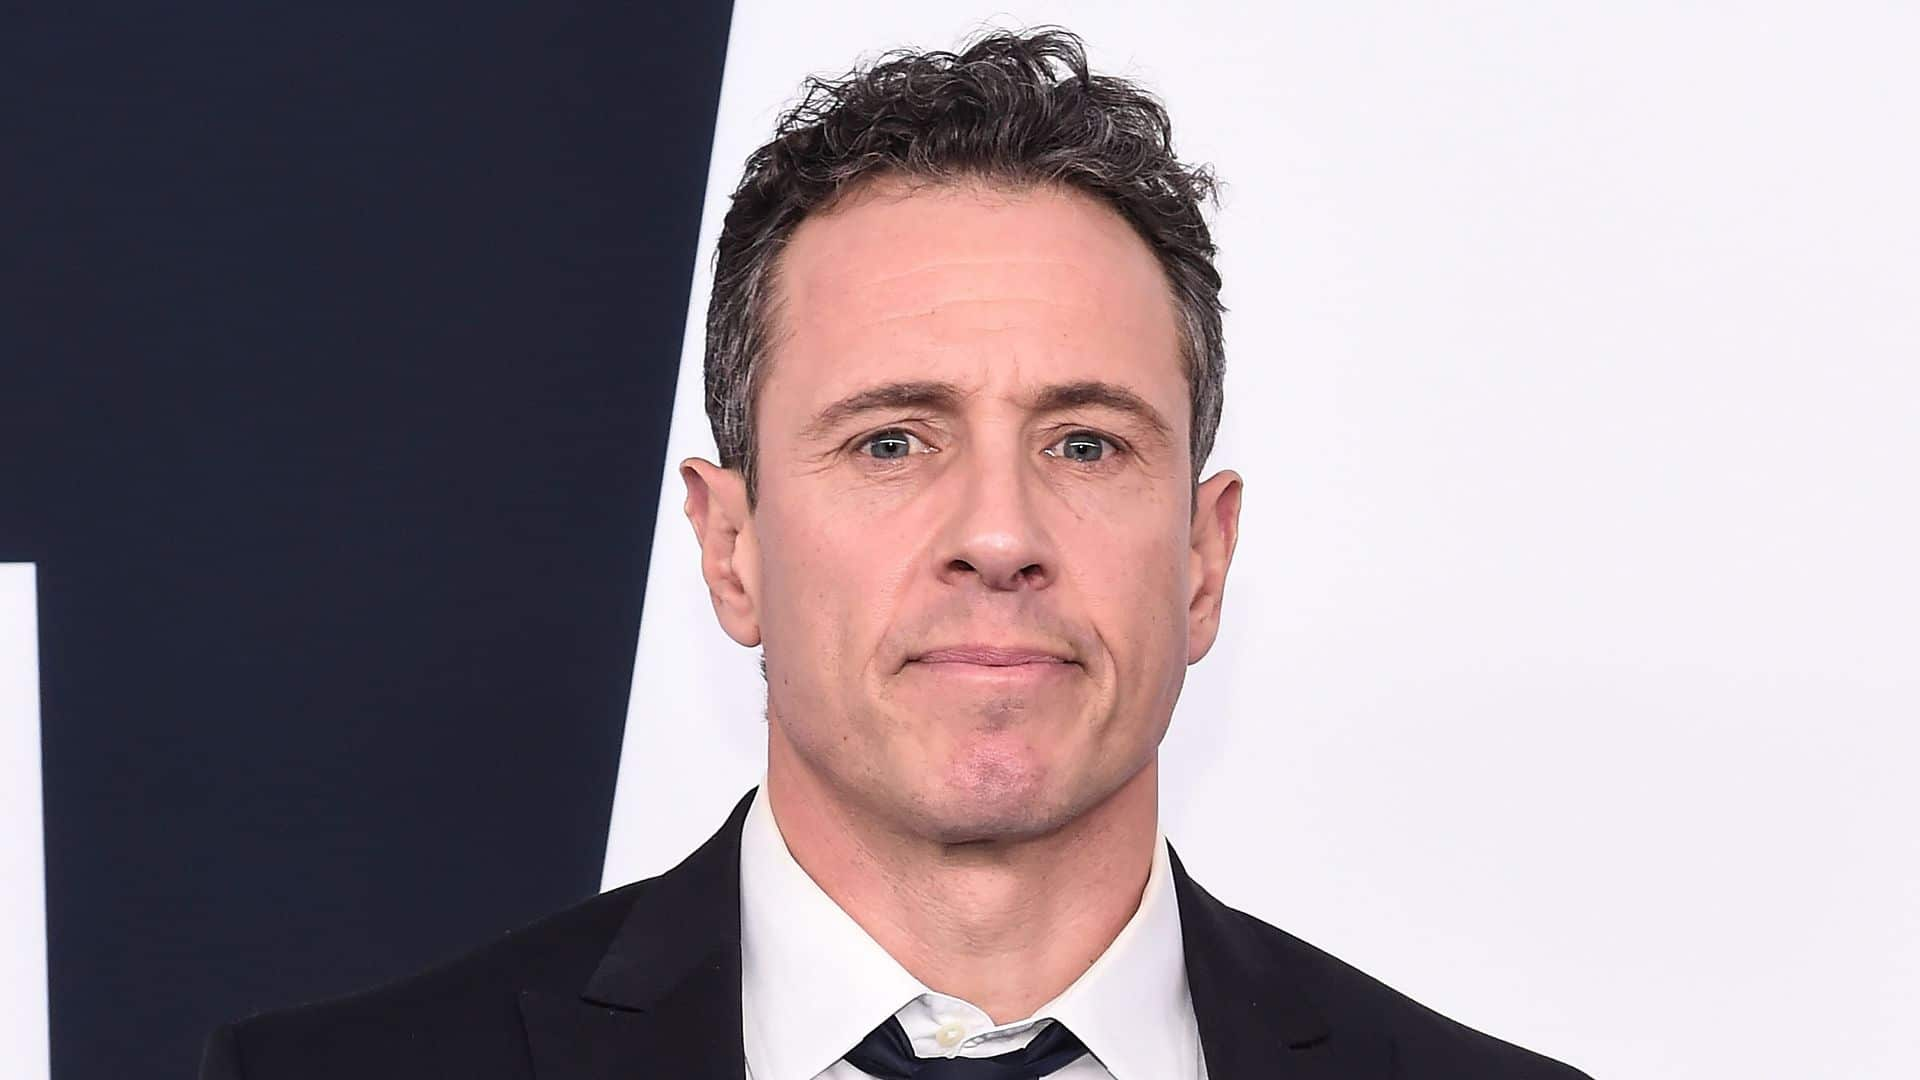 CNN Anchor, Chris Cuomo Tests Positive For Coronavirus